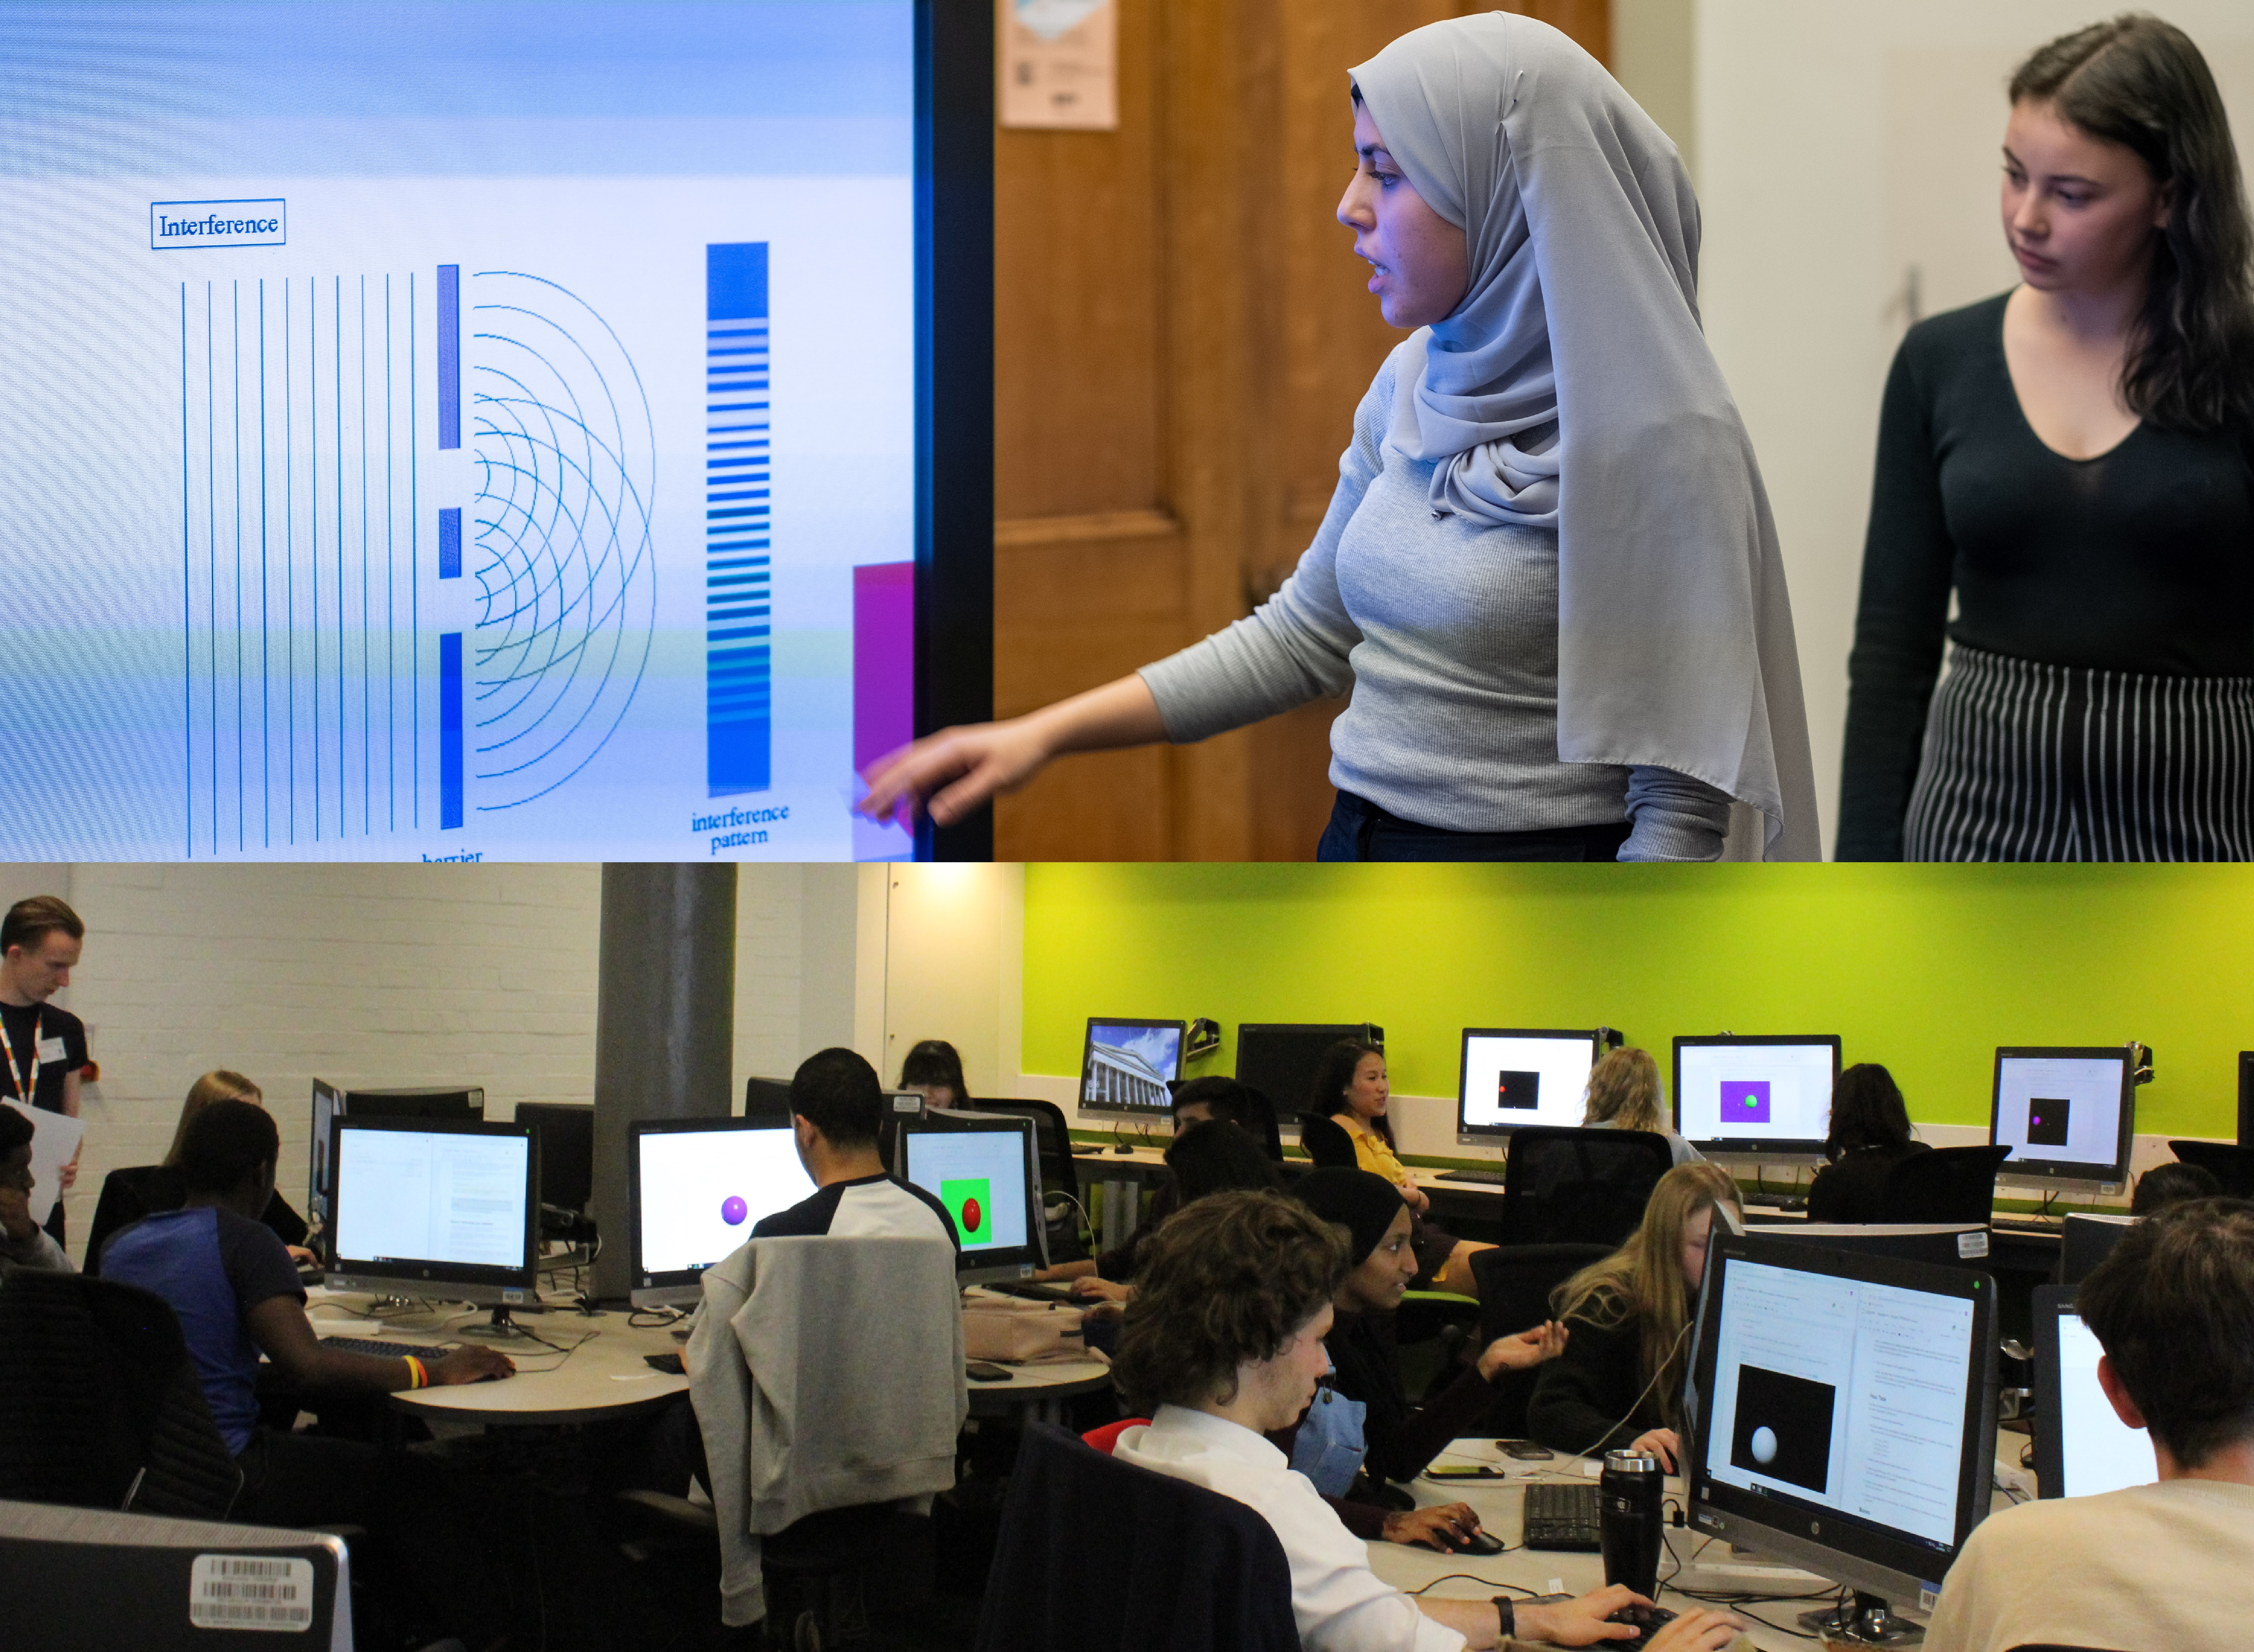 Split image, top half a course participant presenting their work, bottom half course participants working in a computer cluster.